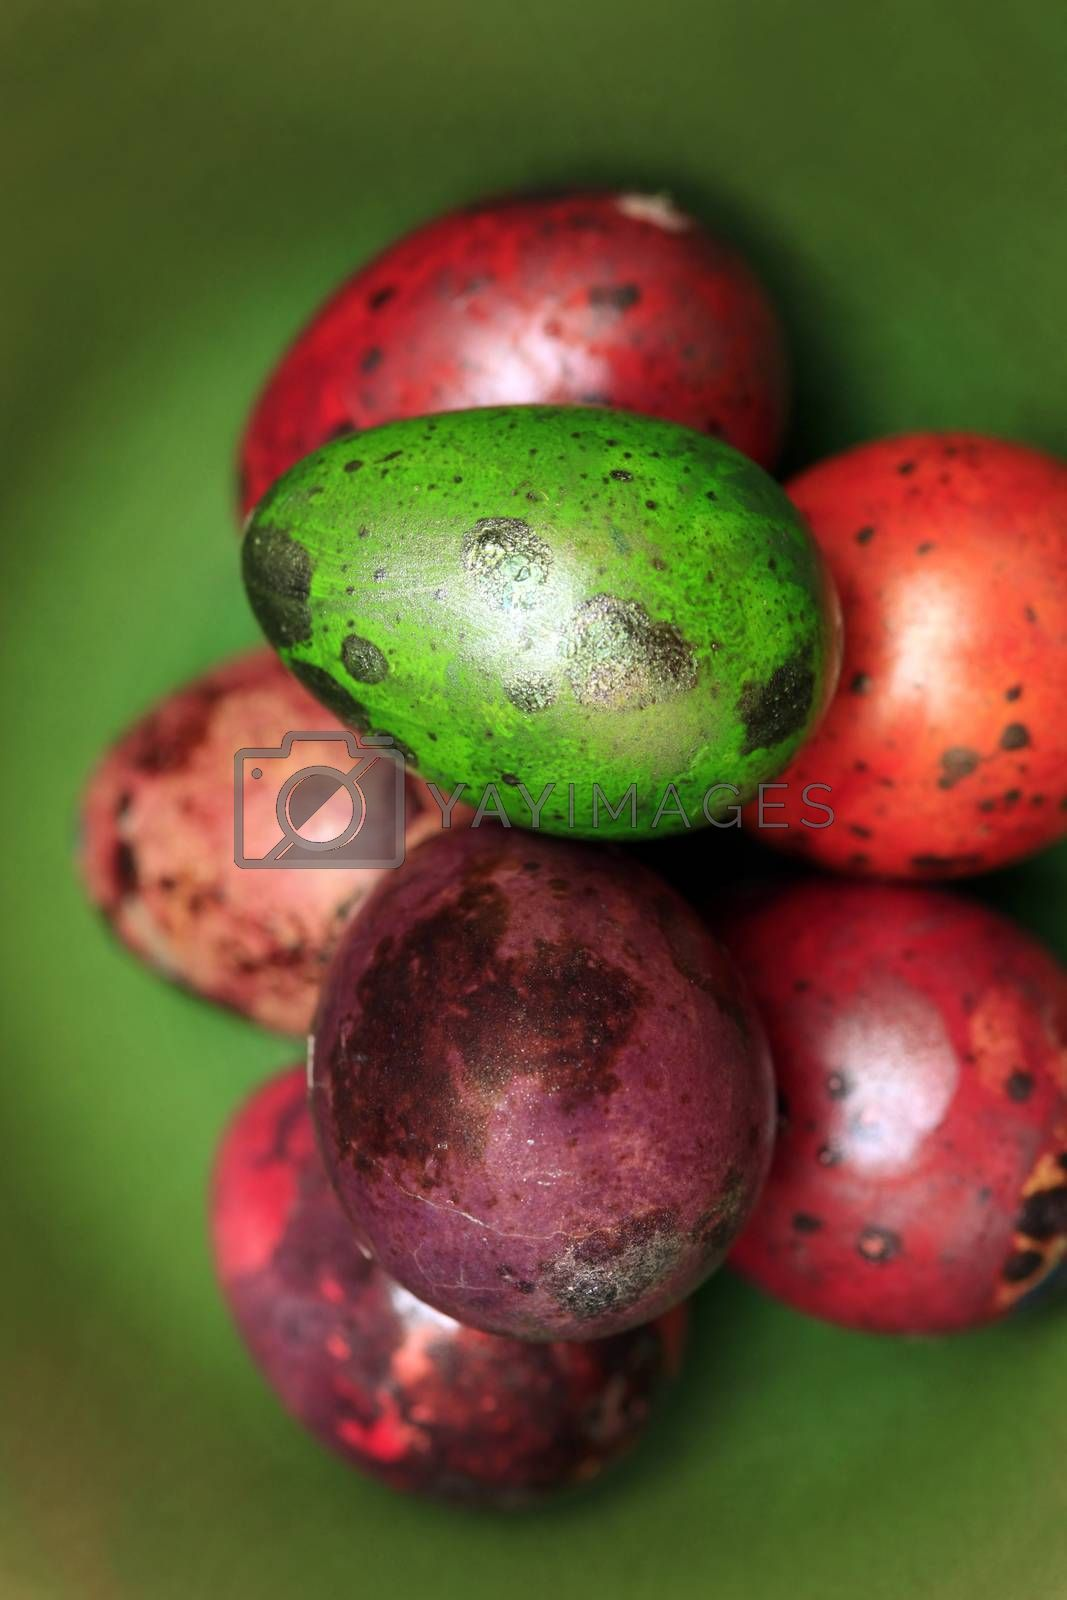 Colorful Speckled Easter Egg on Green Background